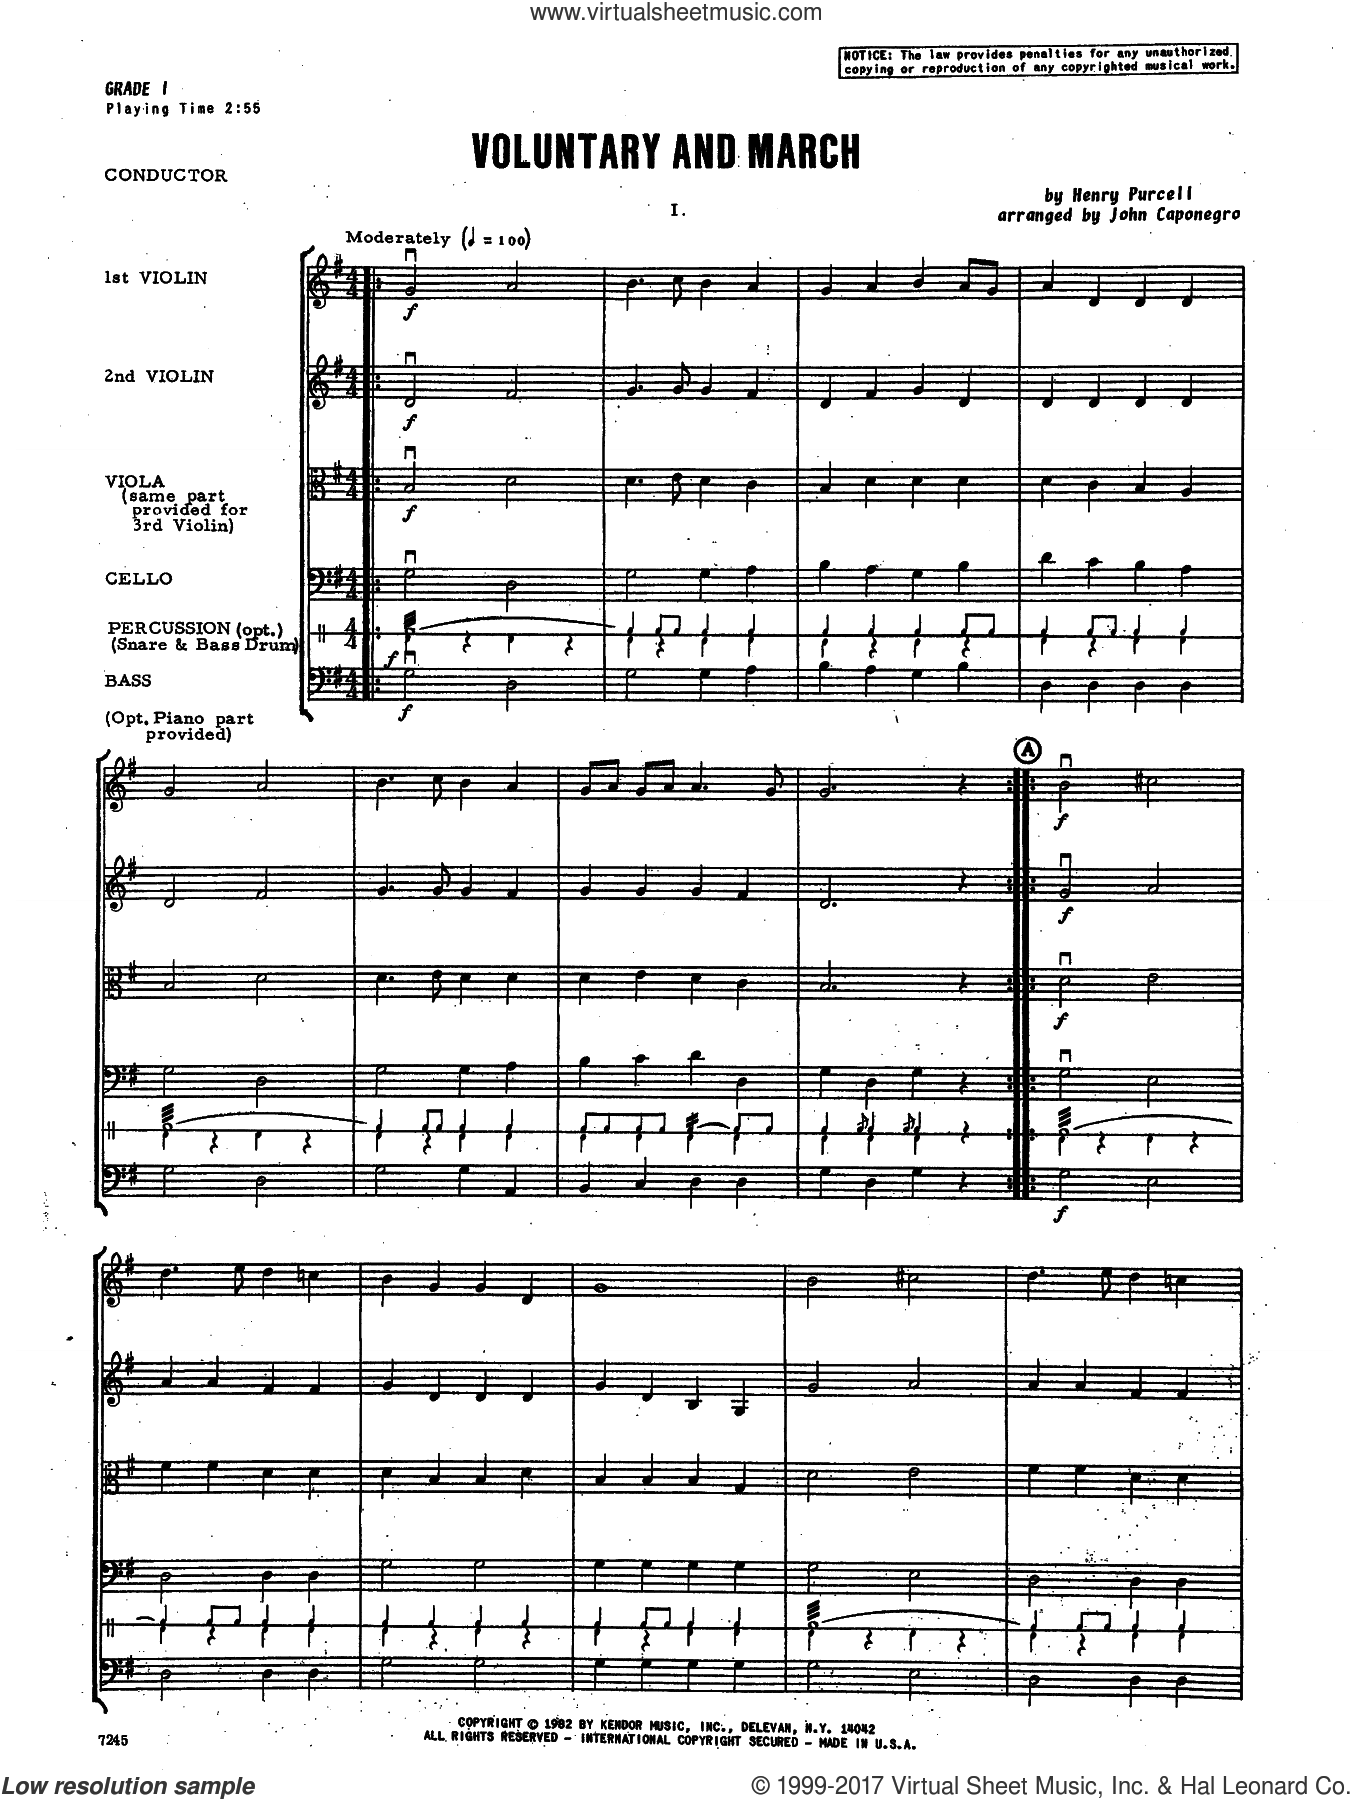 Voluntary and March (COMPLETE) sheet music for orchestra by Henry Purcell and John Caponegro, intermediate skill level